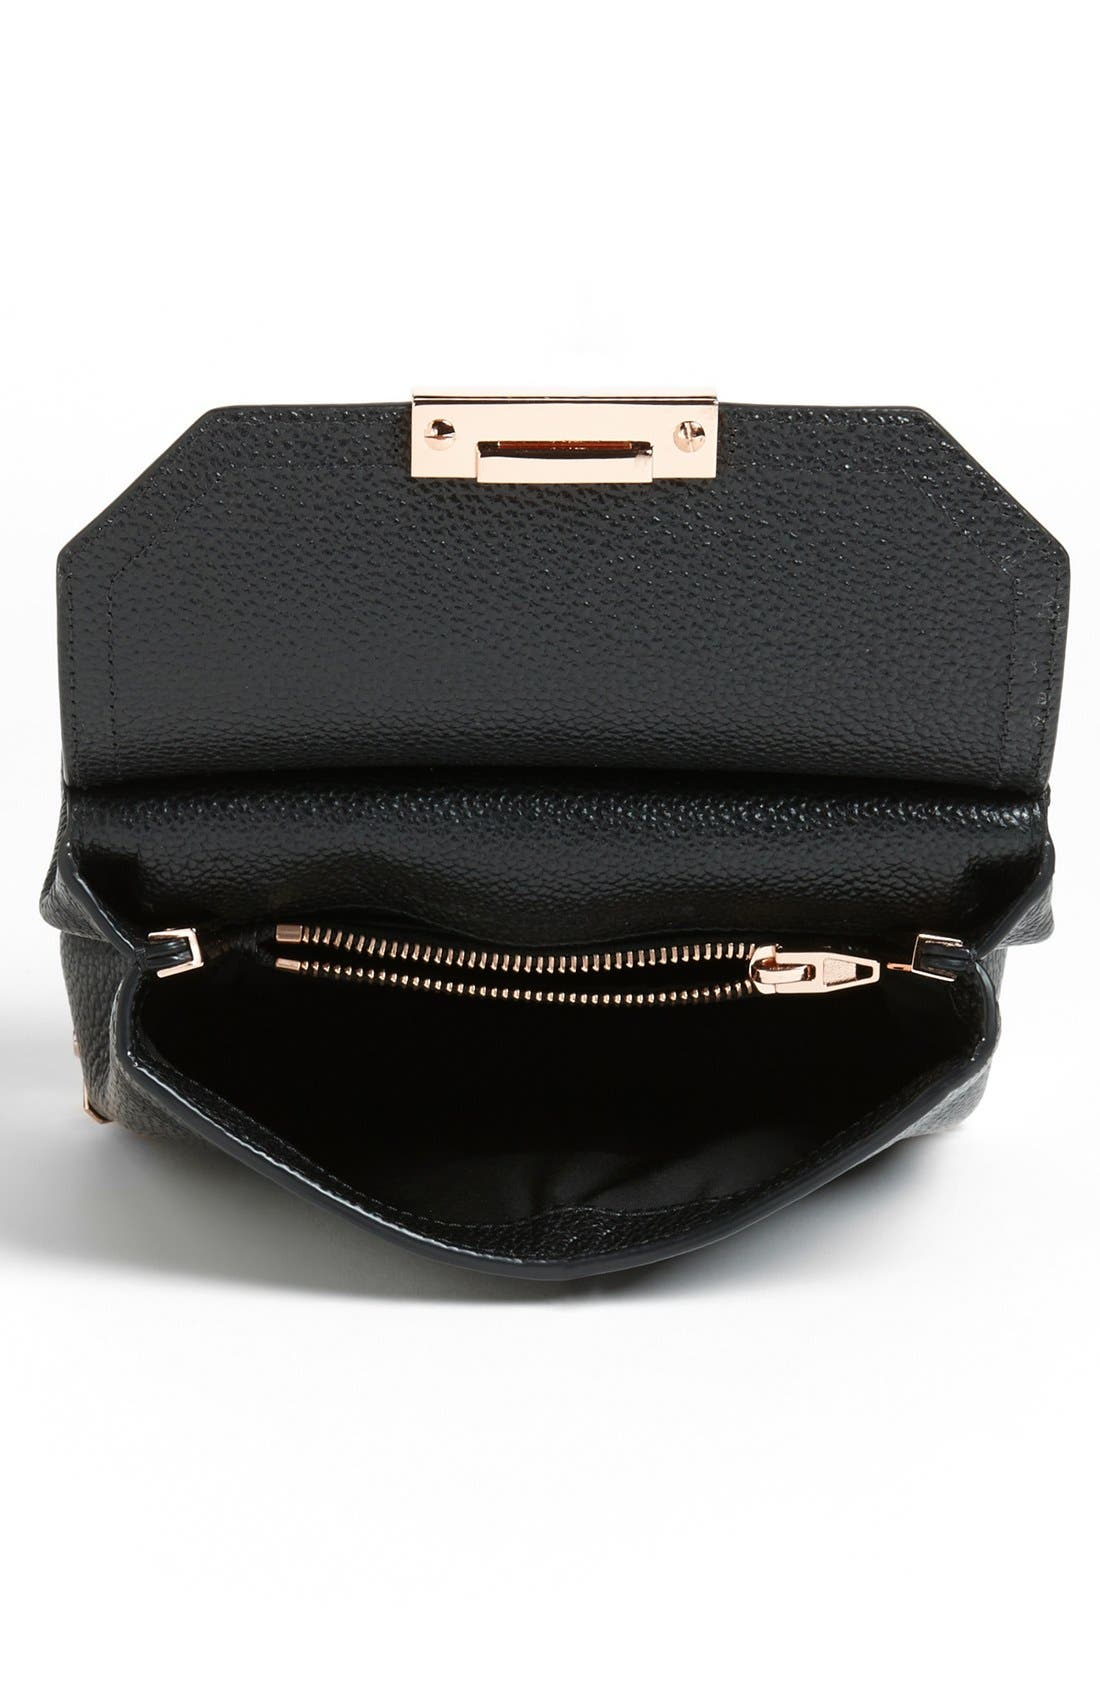 Alternate Image 3  - Alexander Wang 'Marion - Prisma' Leather Crossbody Bag